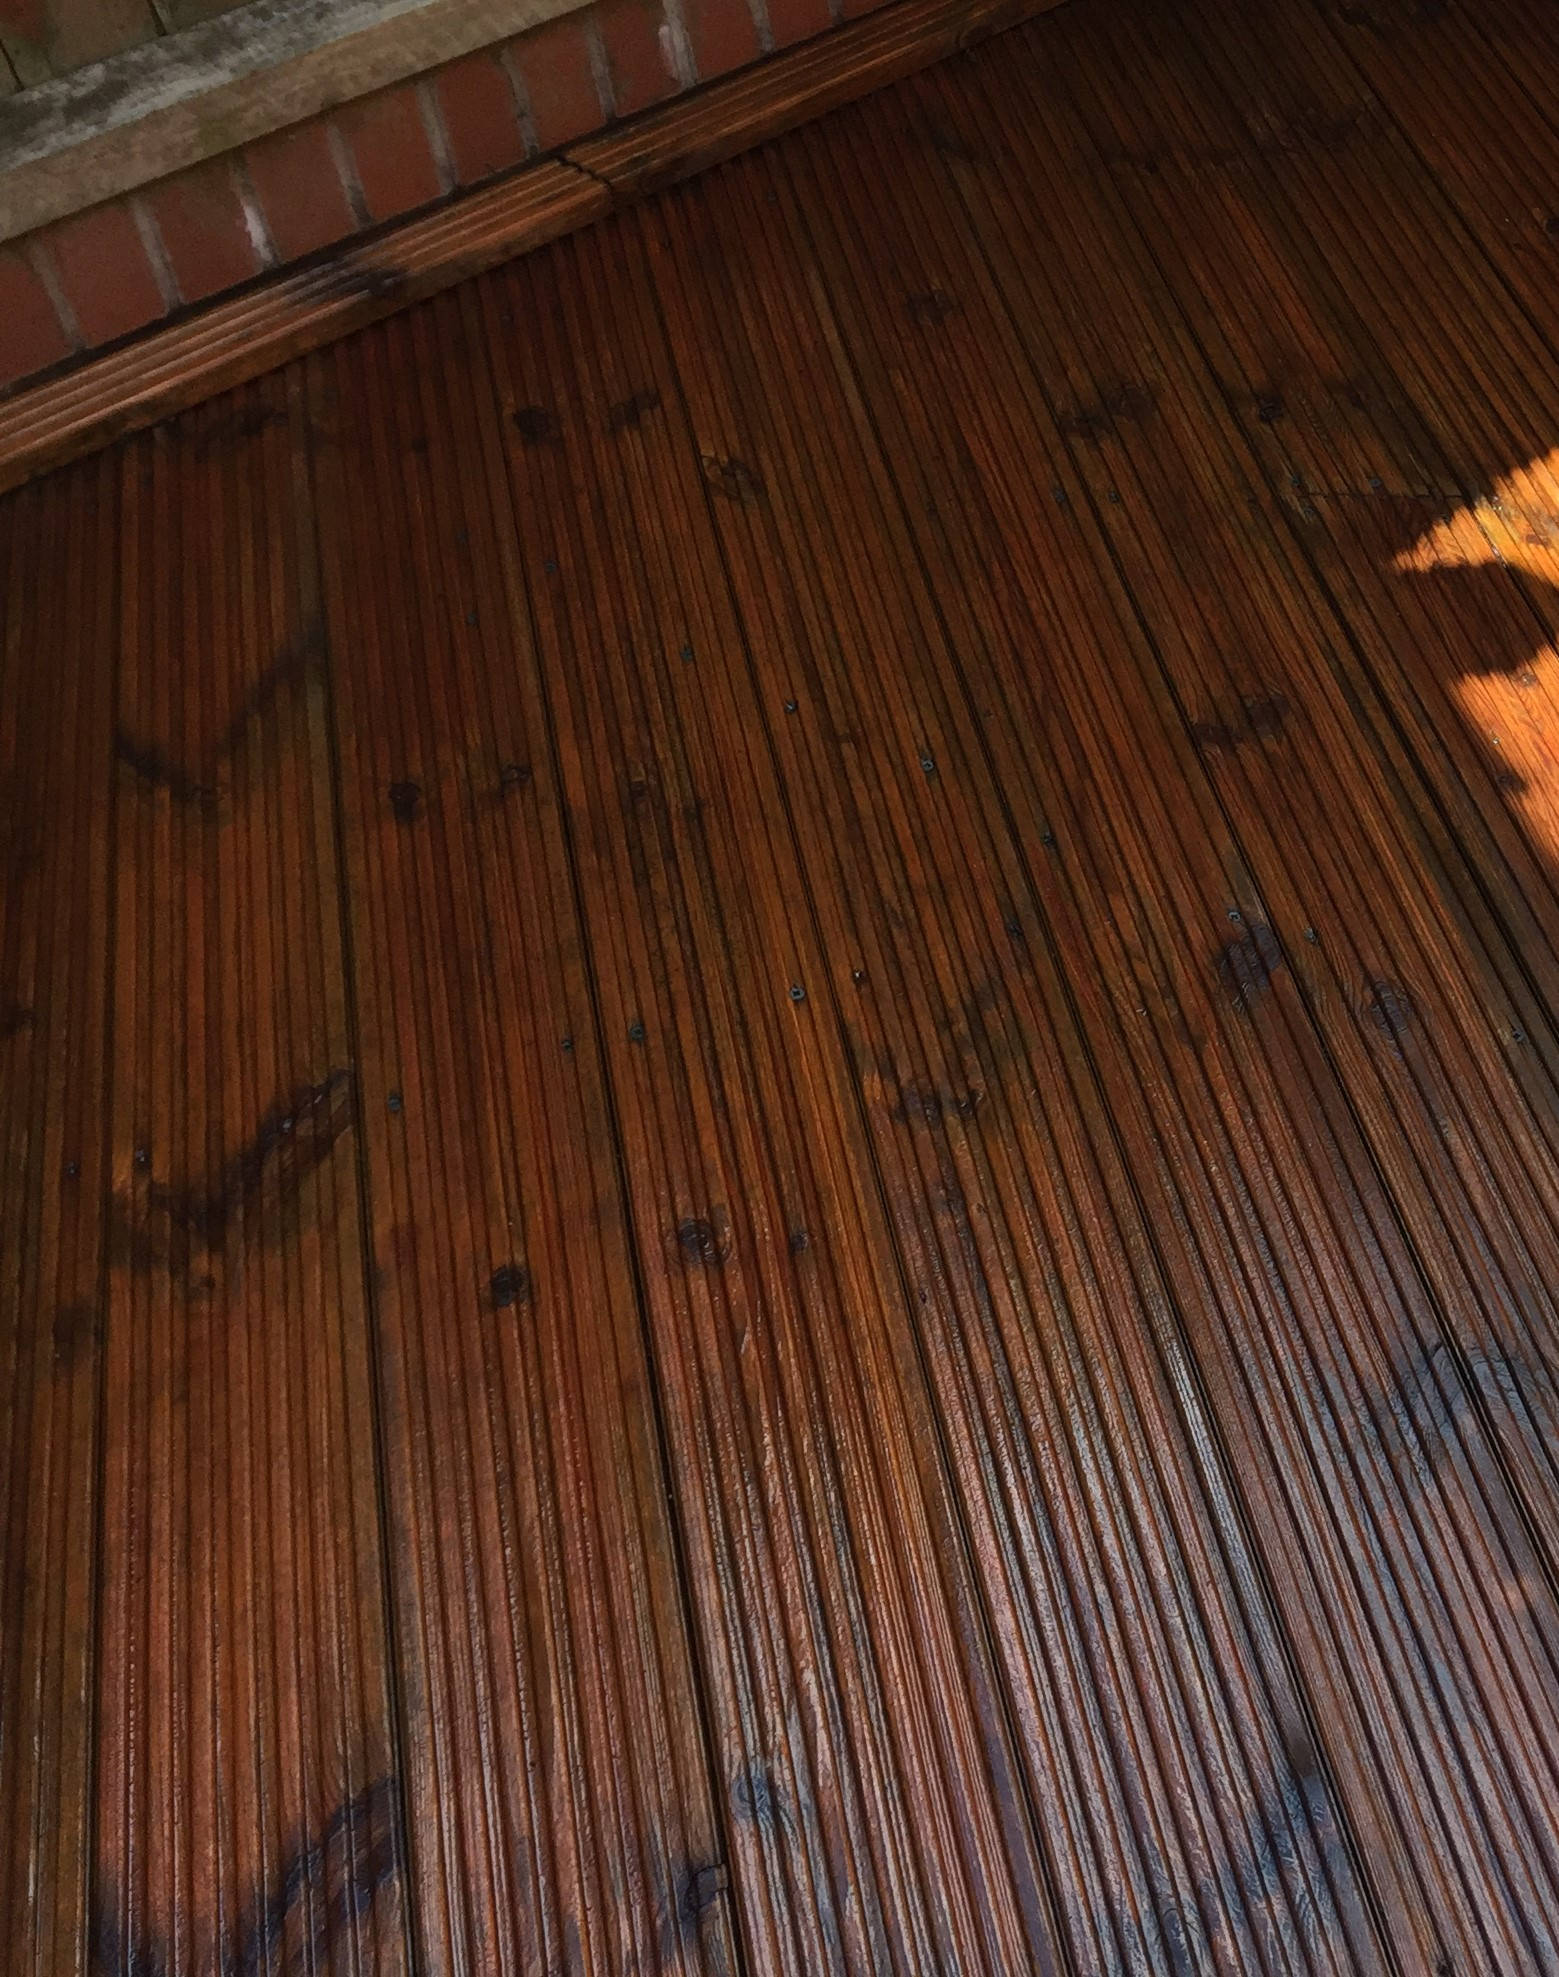 Decking After Cleaning and Oiling